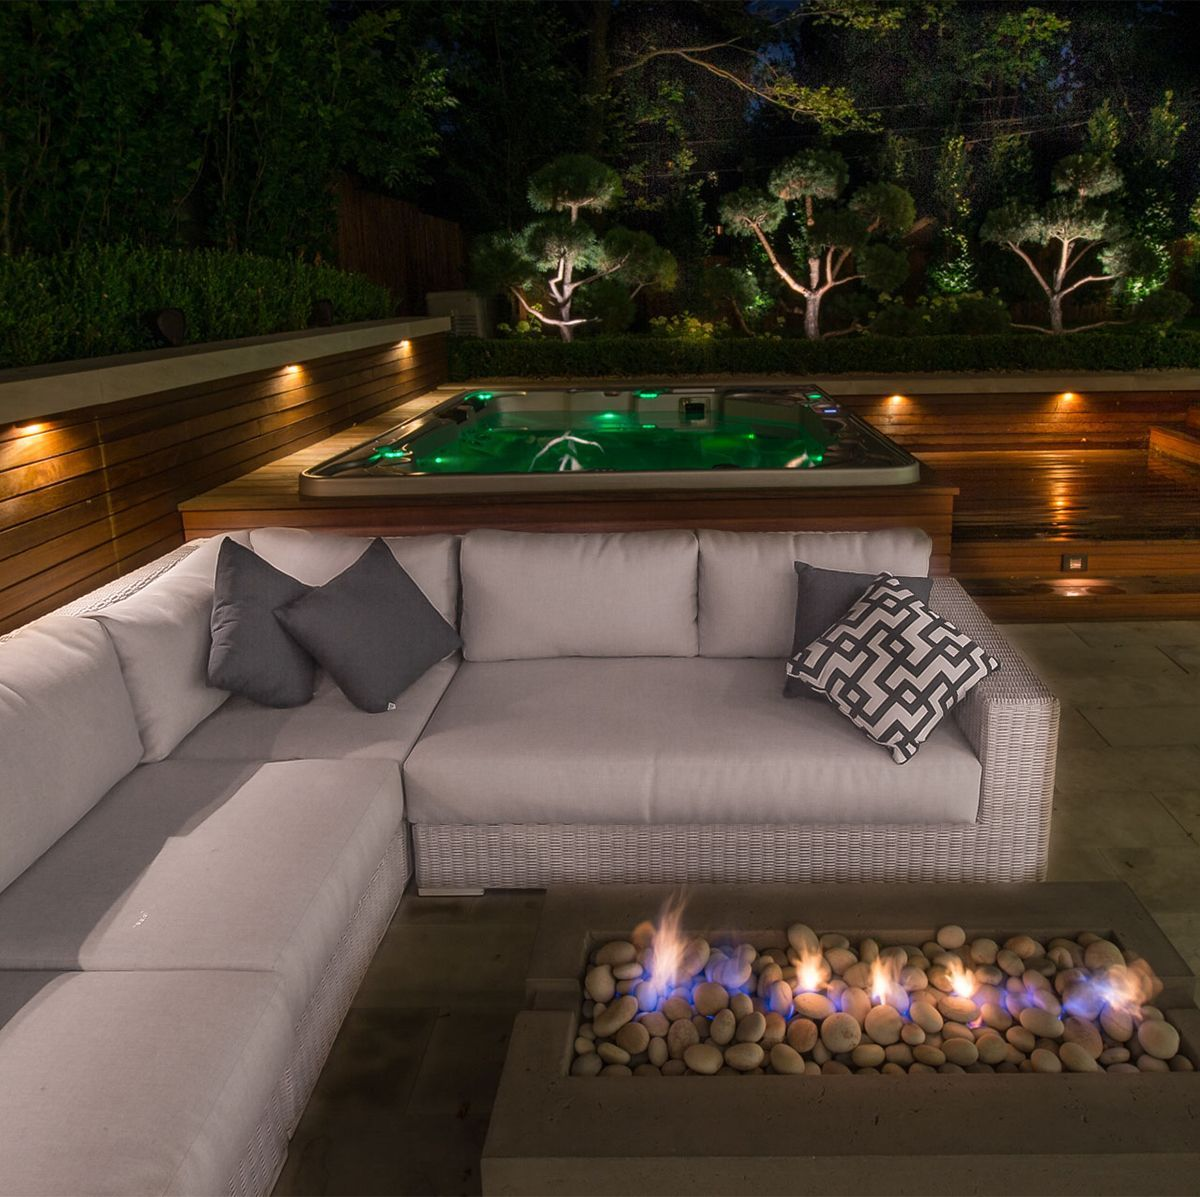 Add some outdoor lig